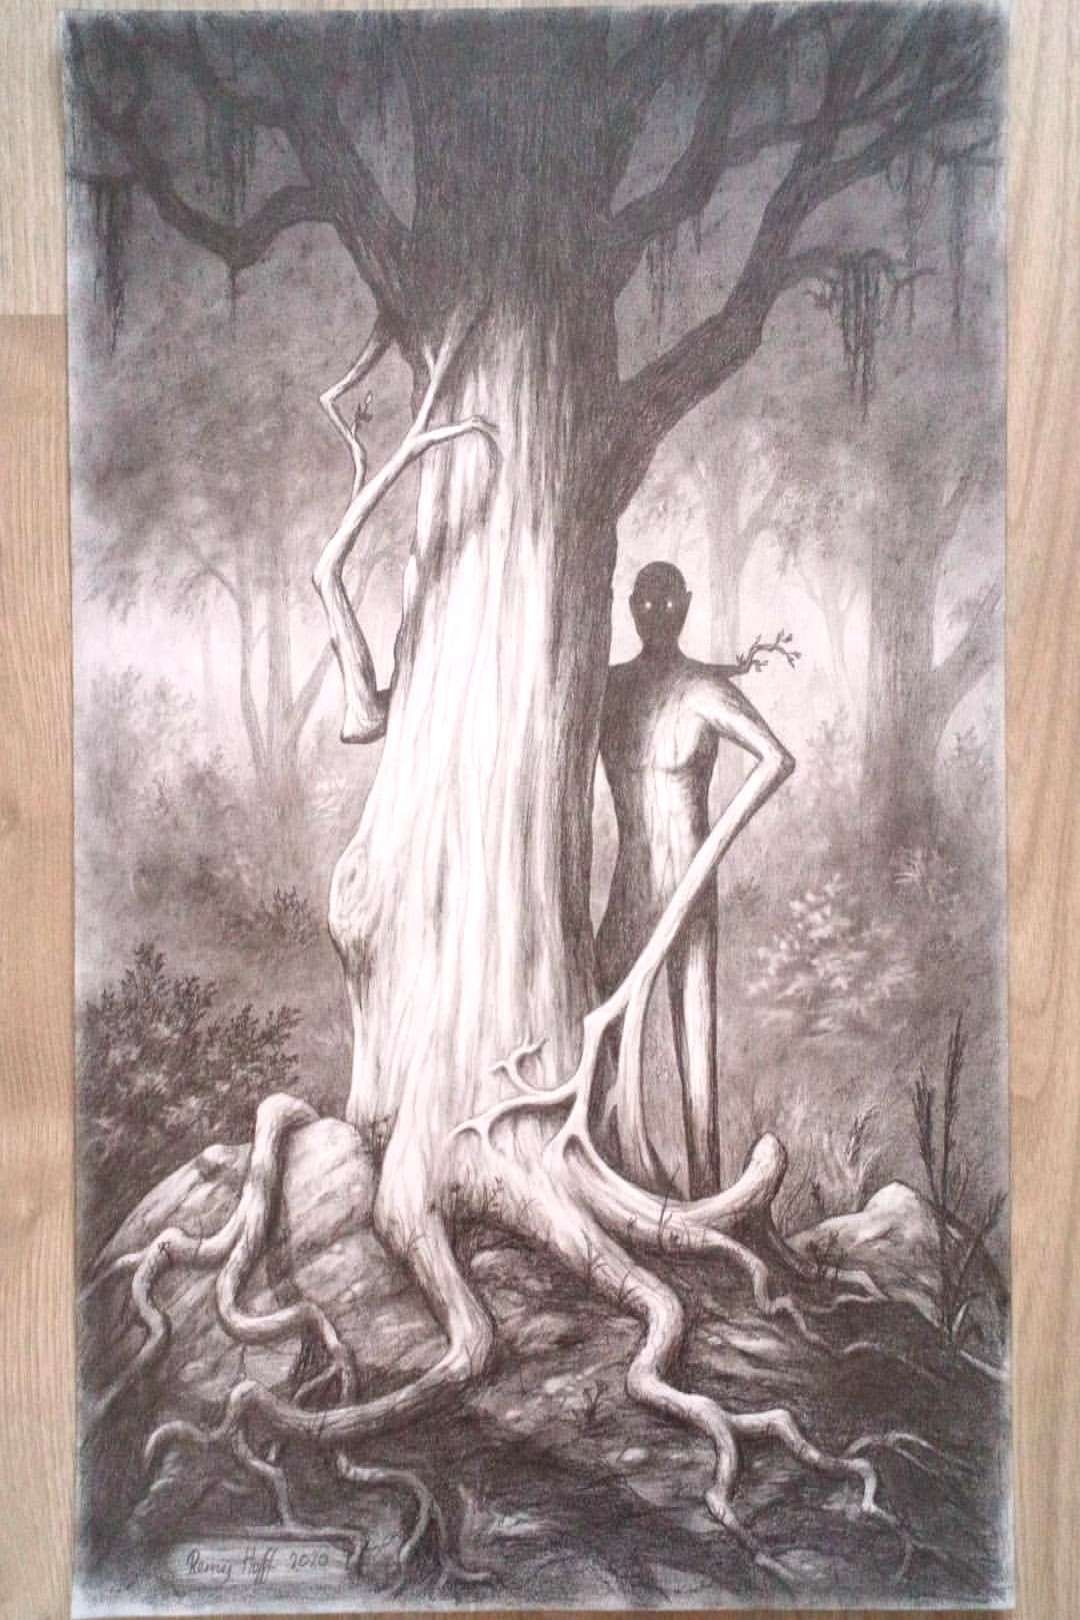 #pencildrawing #pencilsketch #february #drawing #pencil #232020 #trees #photo #sket #remy #hoff #art #a3 #by #on A3 pencil drawing. #pencildrawing #pencilsketch #art #trees #sketYou can find Dark fores...